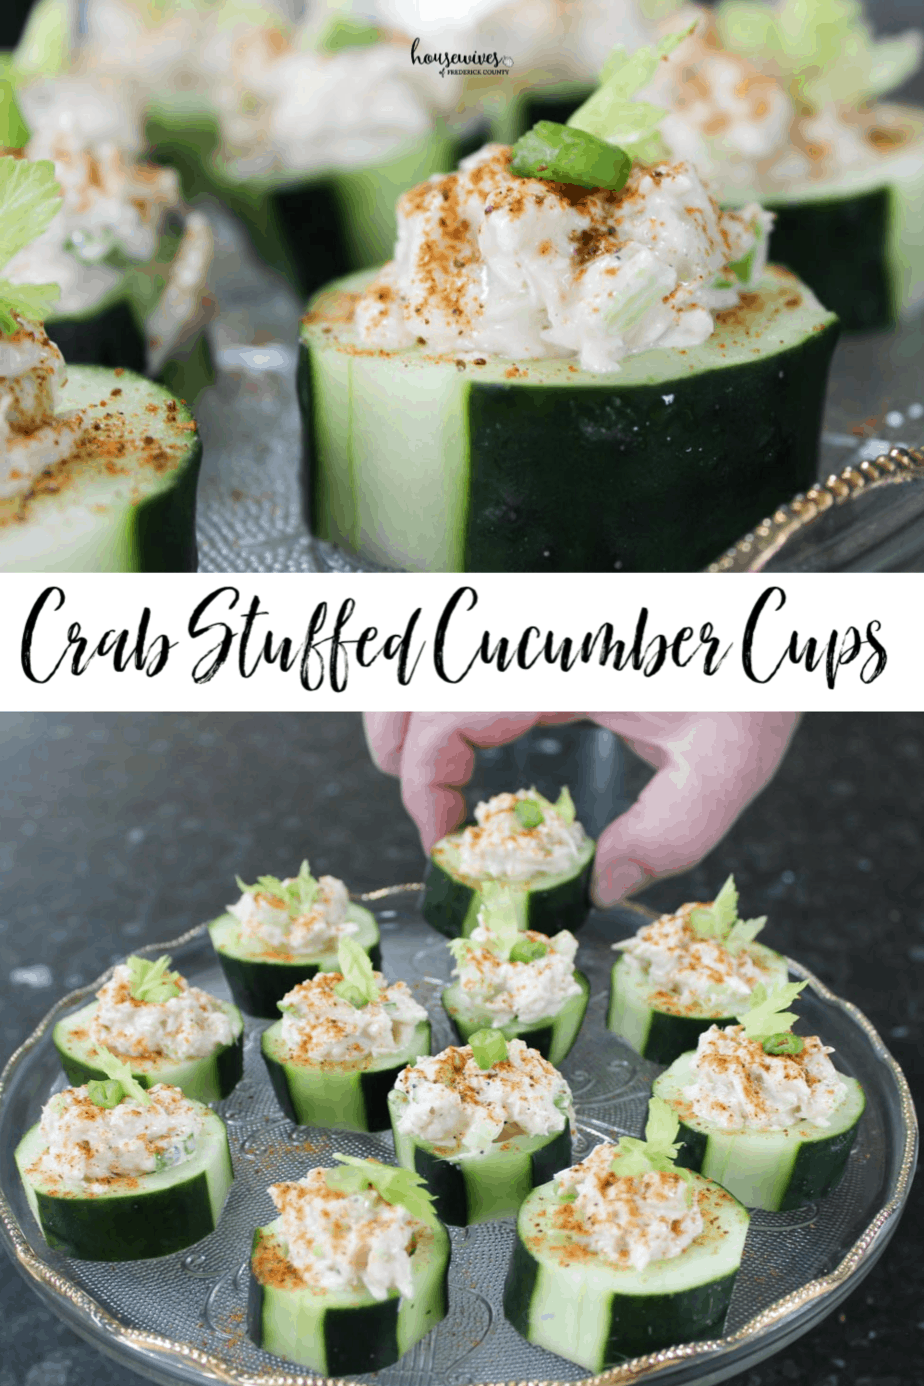 Crab Stuffed Cucumber Cups with Old Bay Seasoning